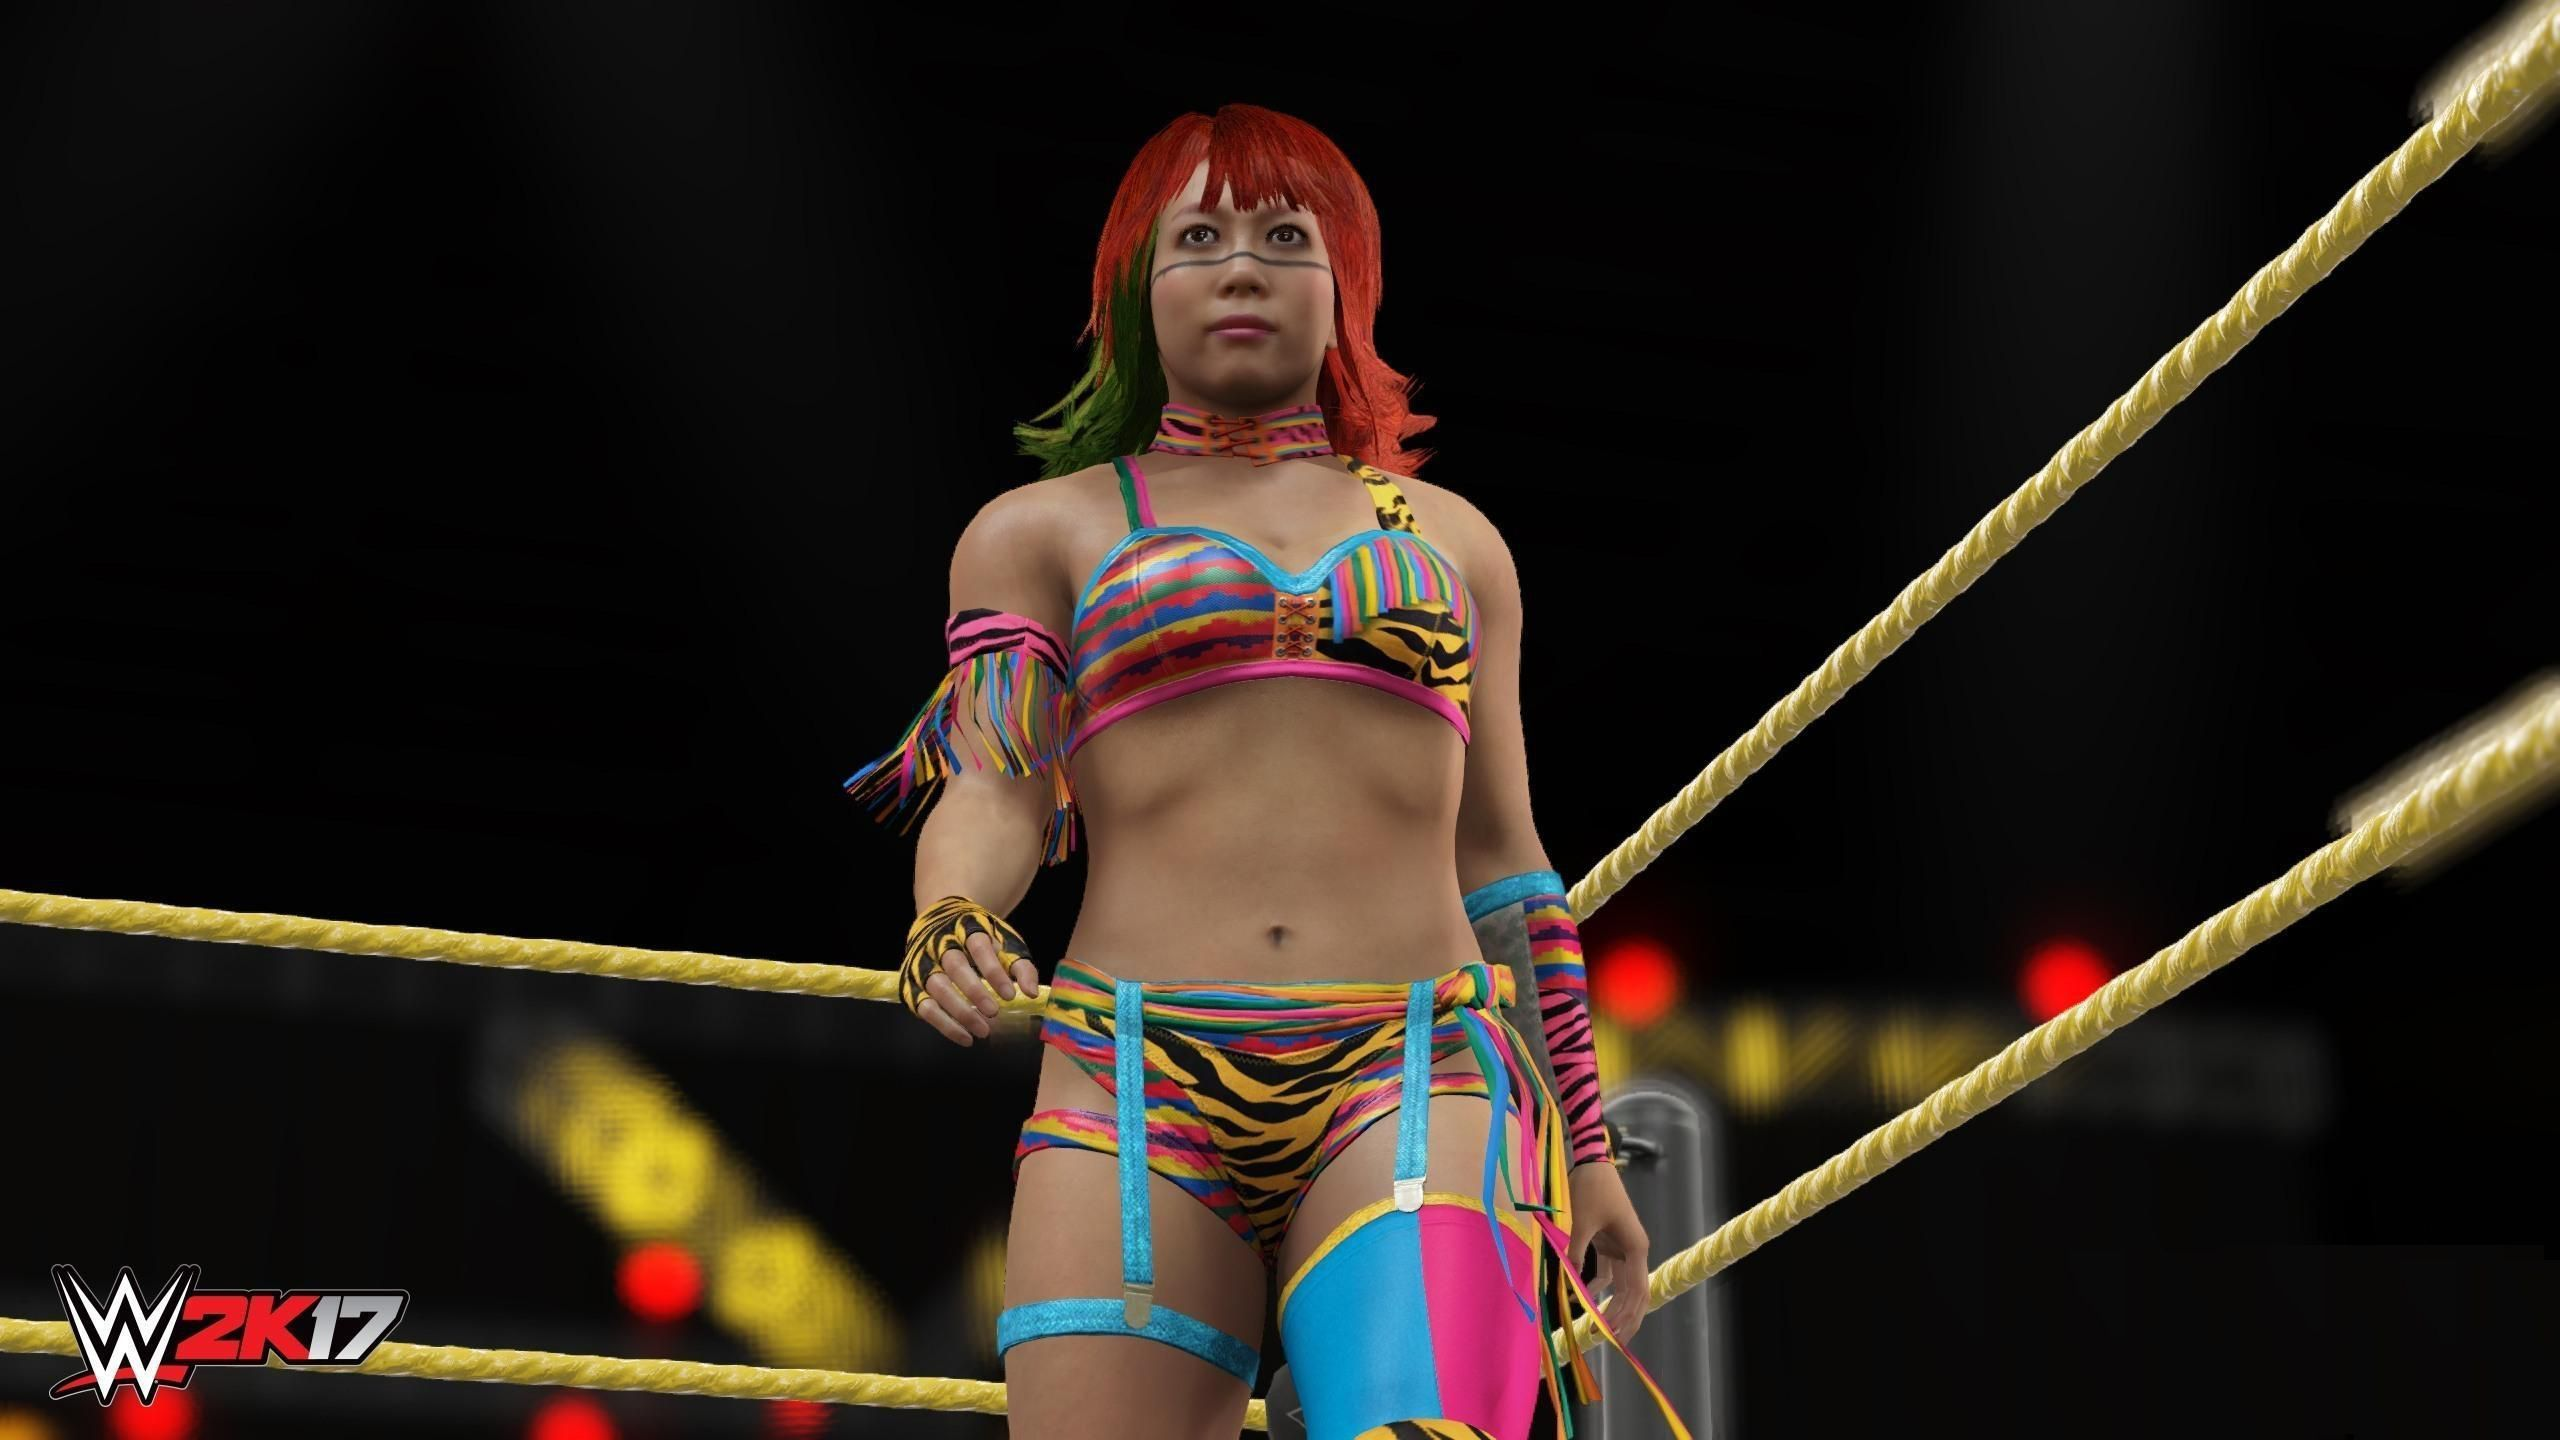 Wwe 2k18 Pictures